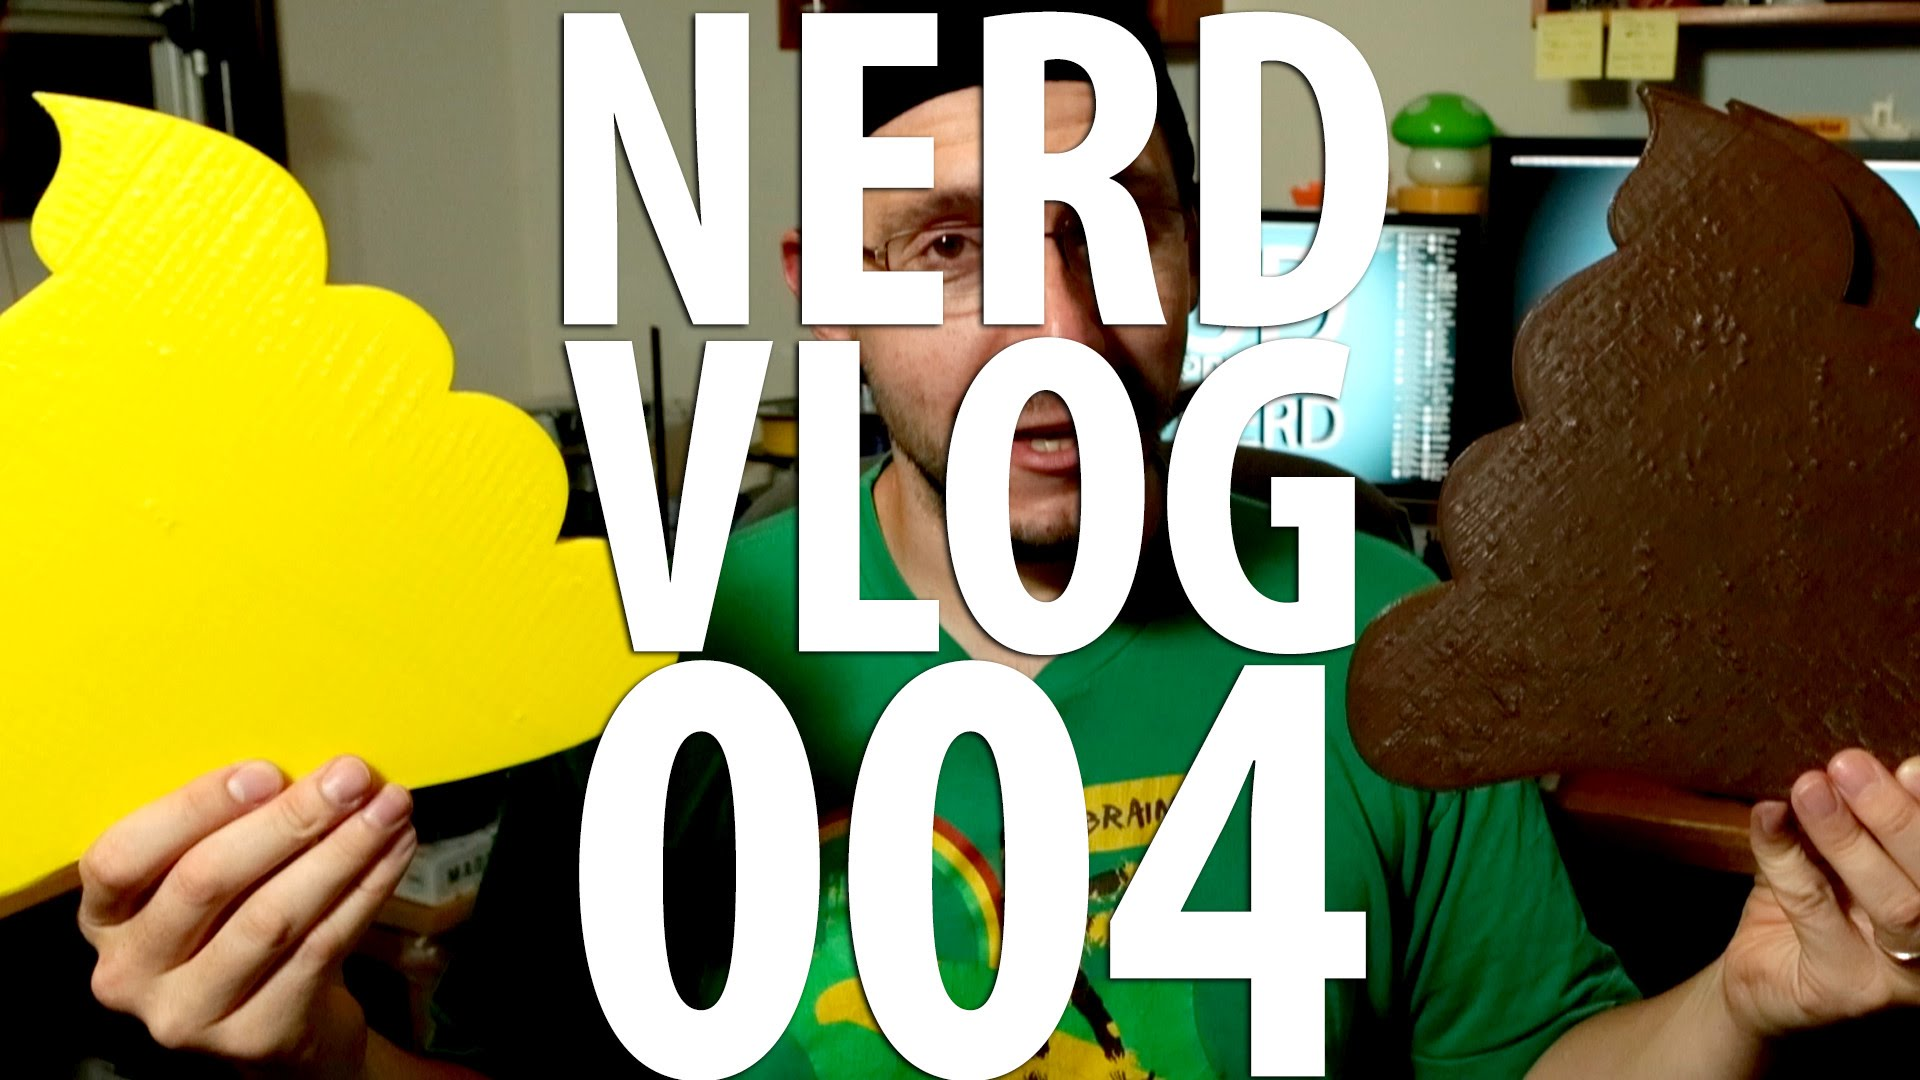 3D Printing / Matter Control Touch / Form Futura / Cake Cutter / Poo Emoji – Nerd Vlog 004